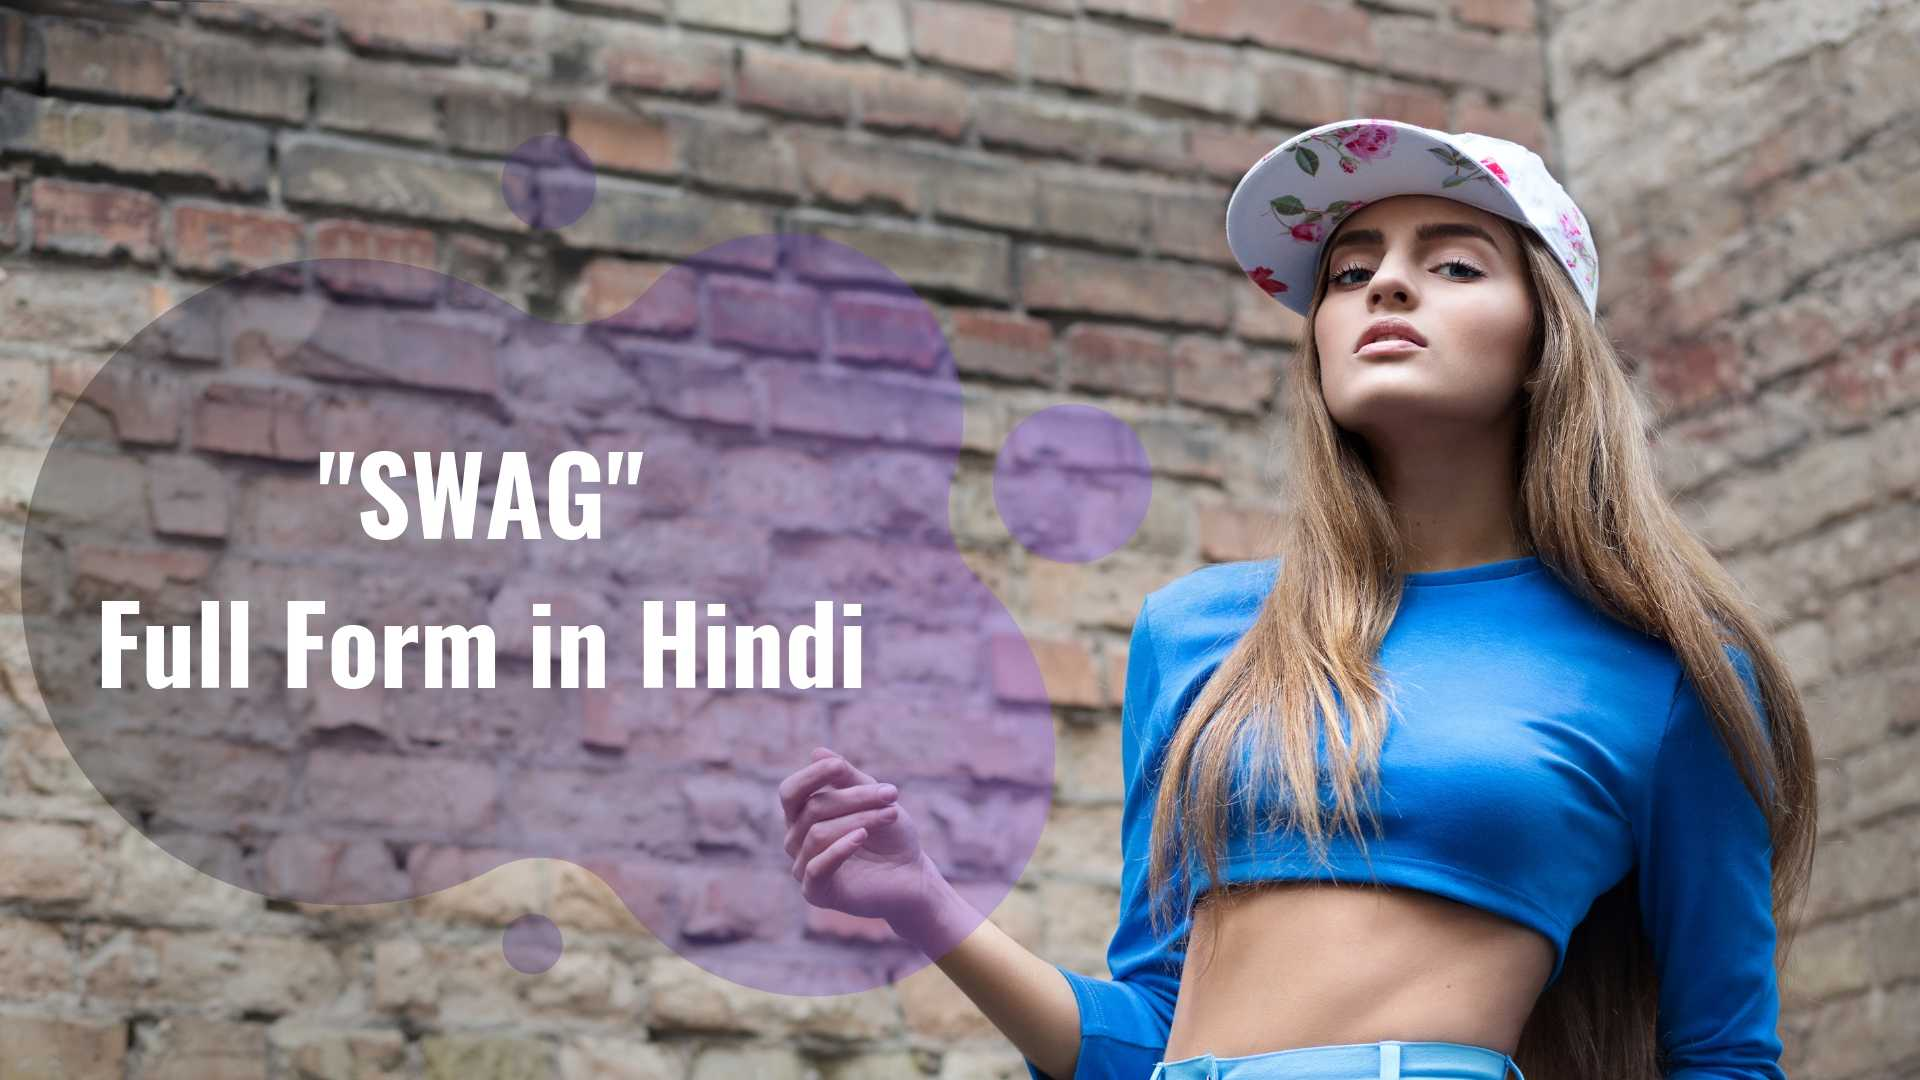 swag full form in hindi